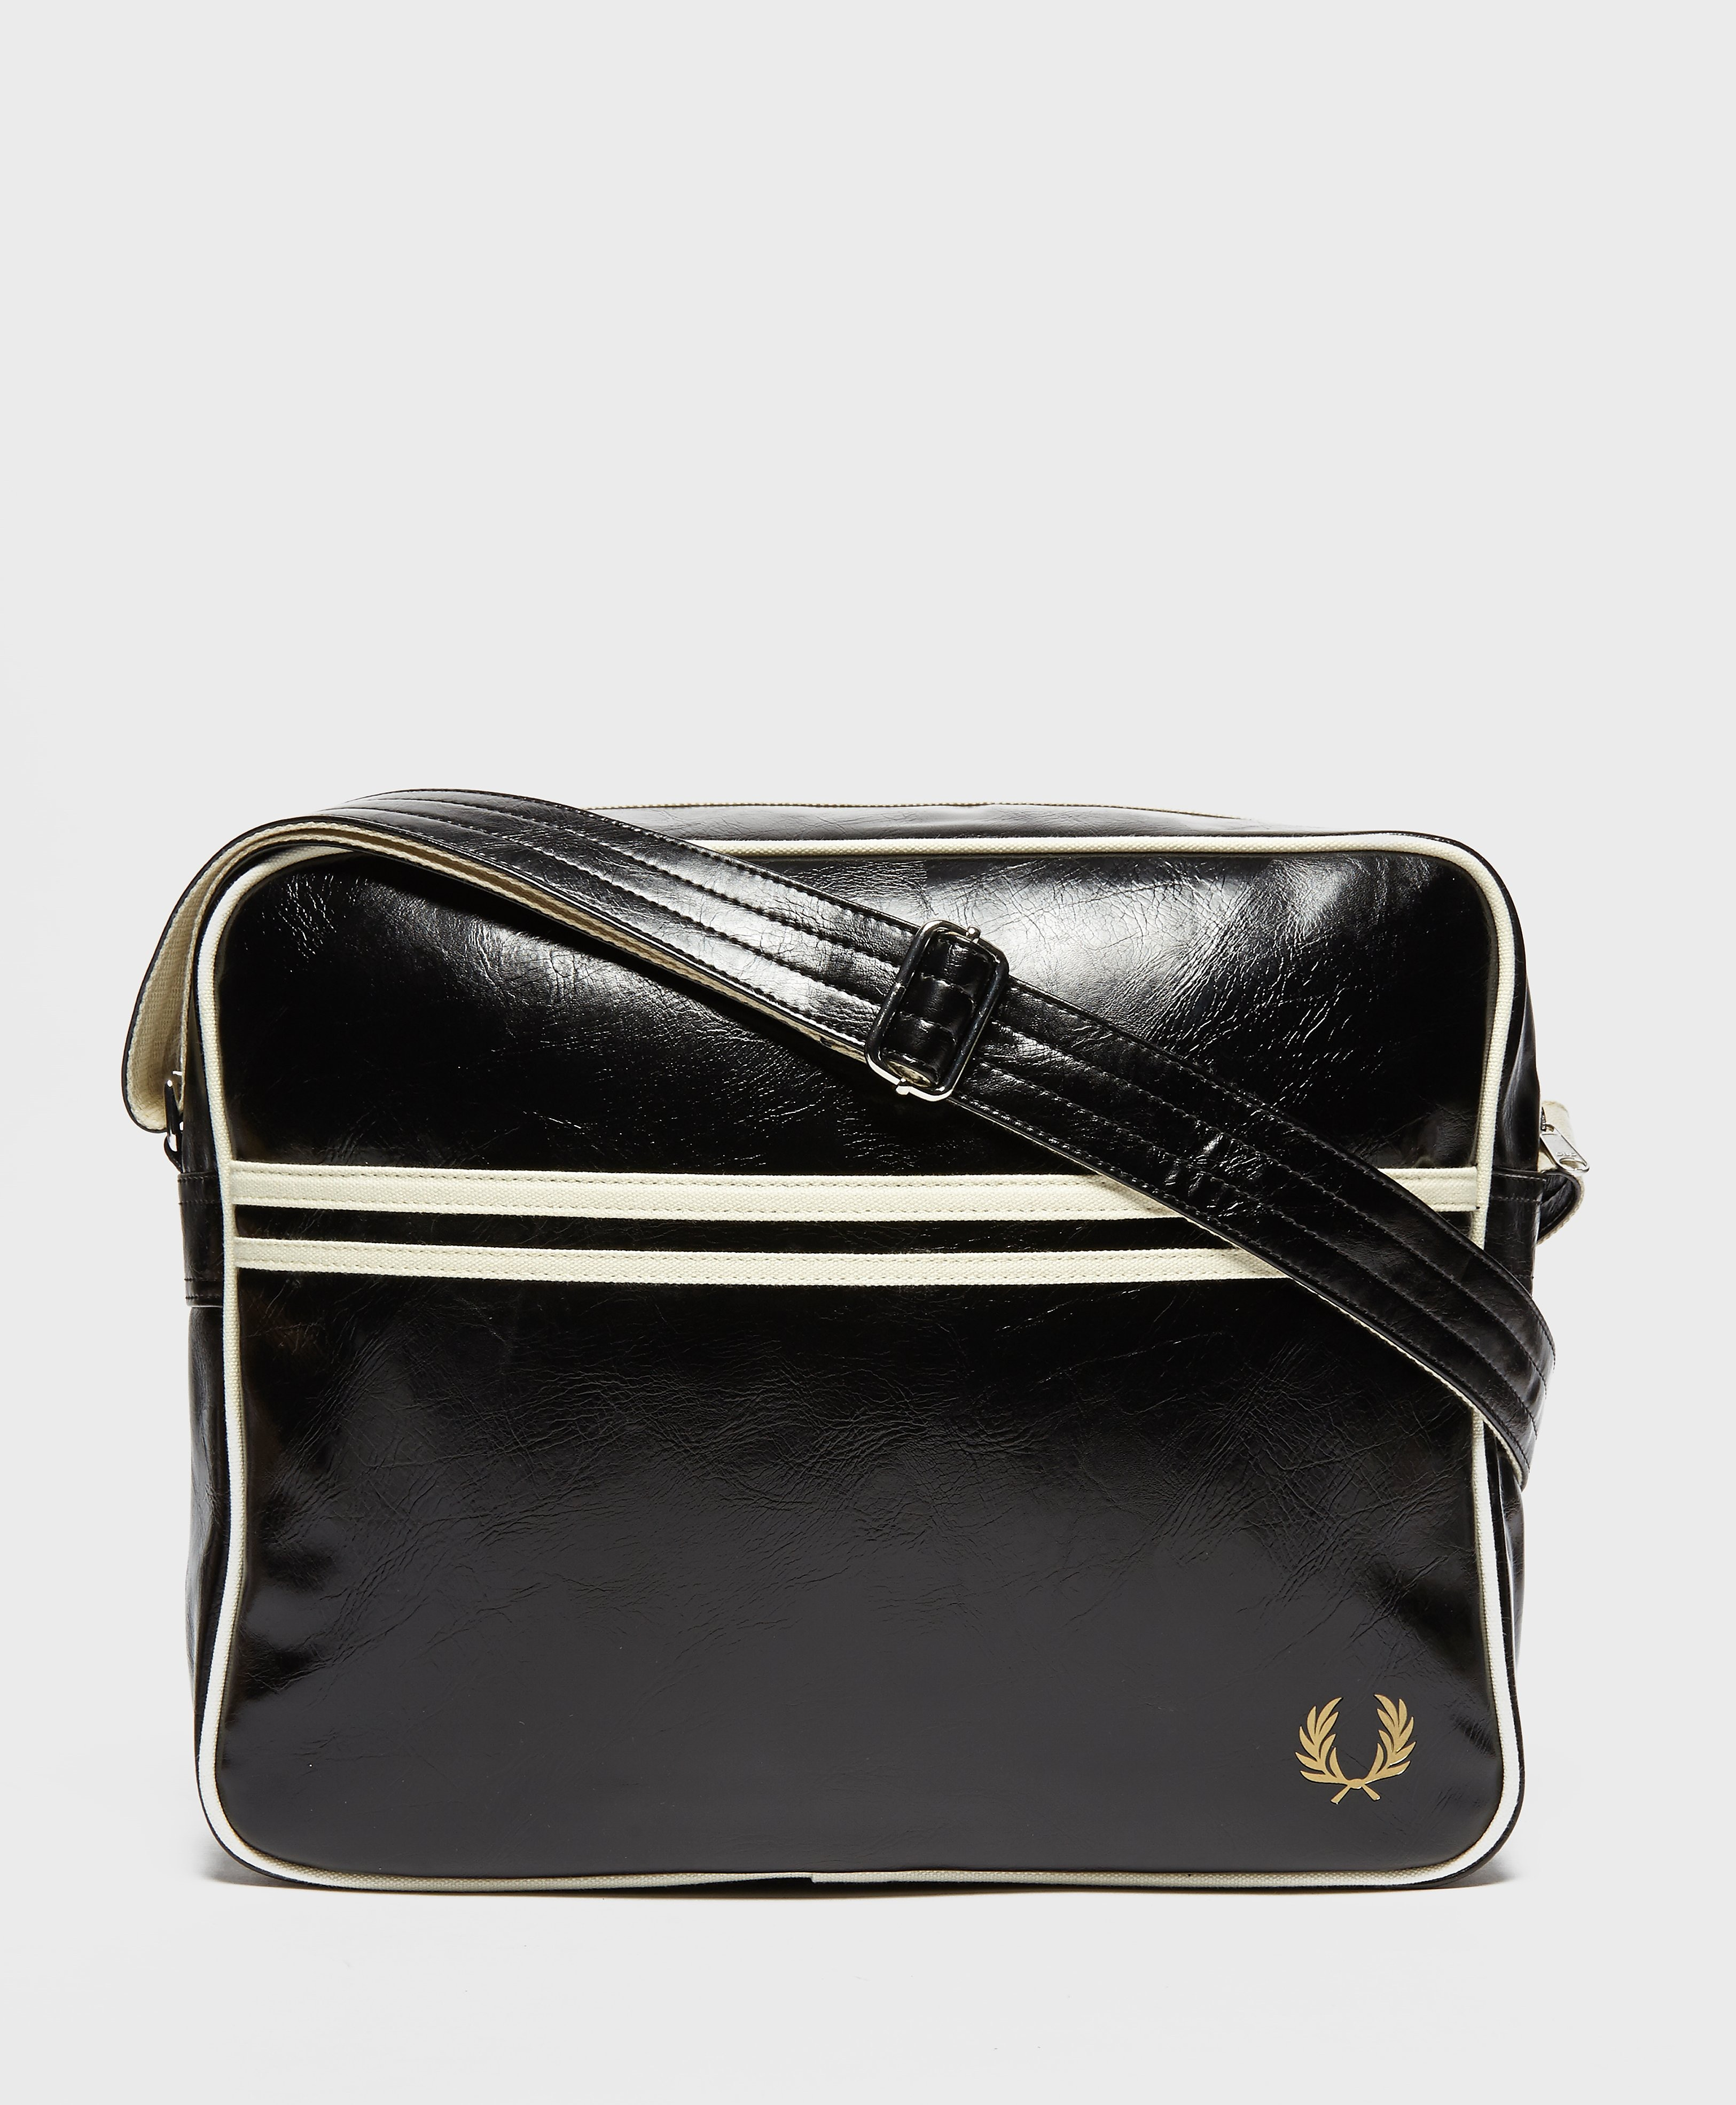 Fred Perry Classic Shoulder Bag  Black Black